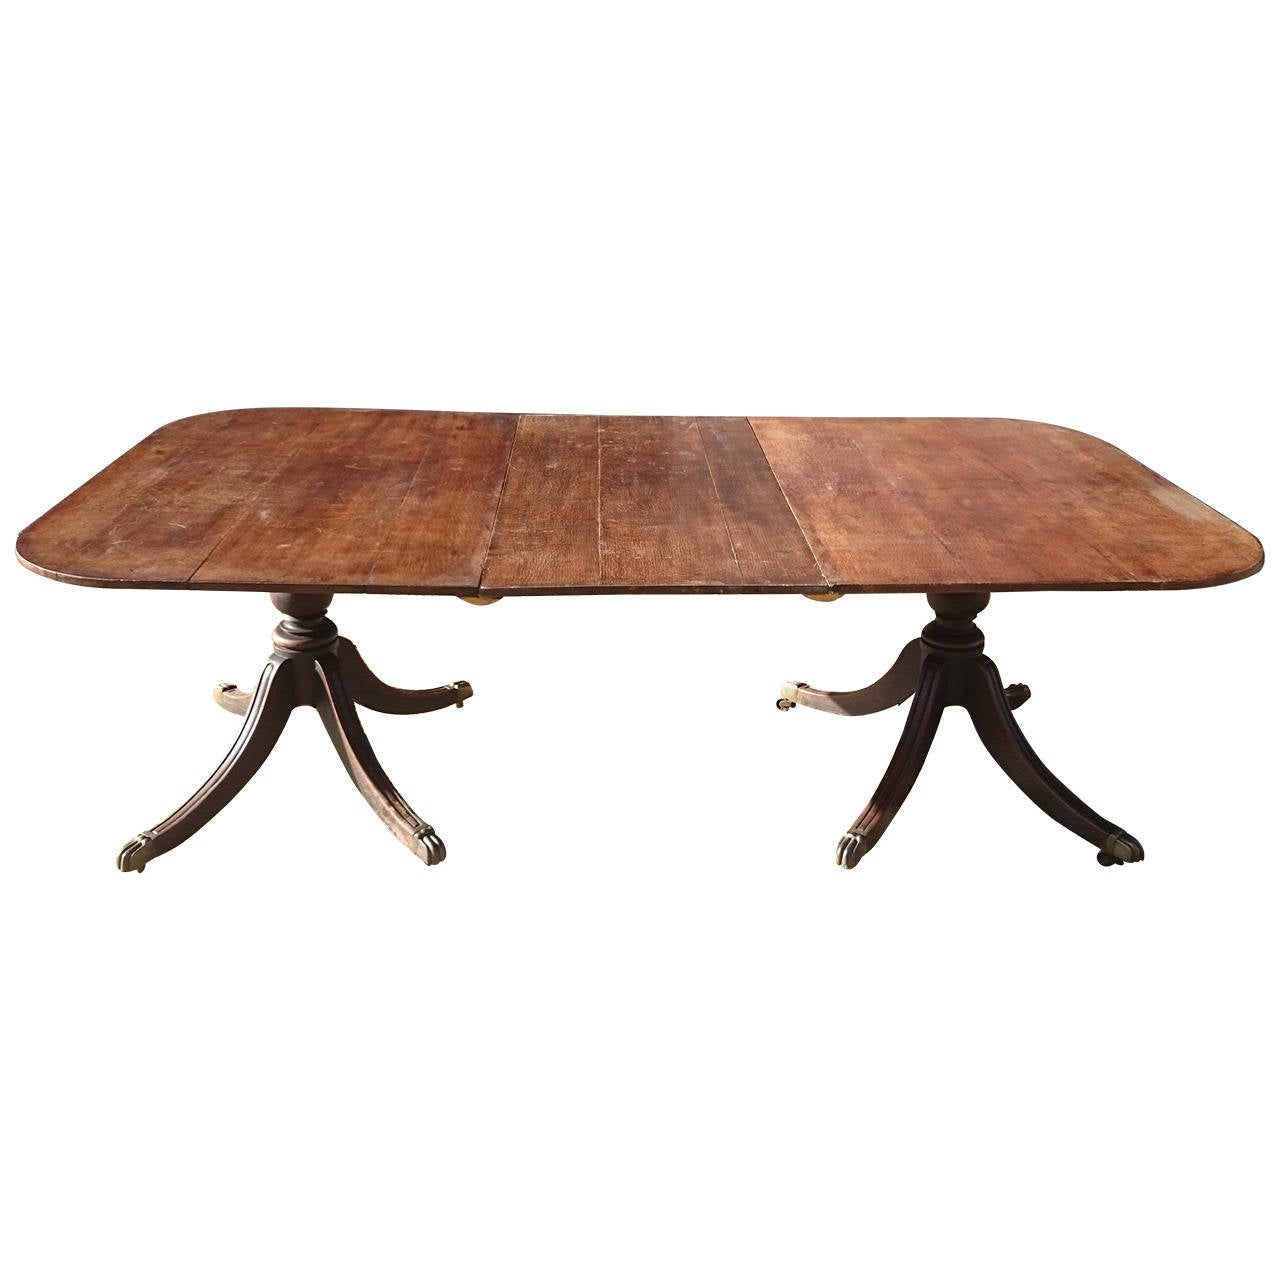 Early 19th century oak twin pillar dining table at 1stdibs for Pillar dining table